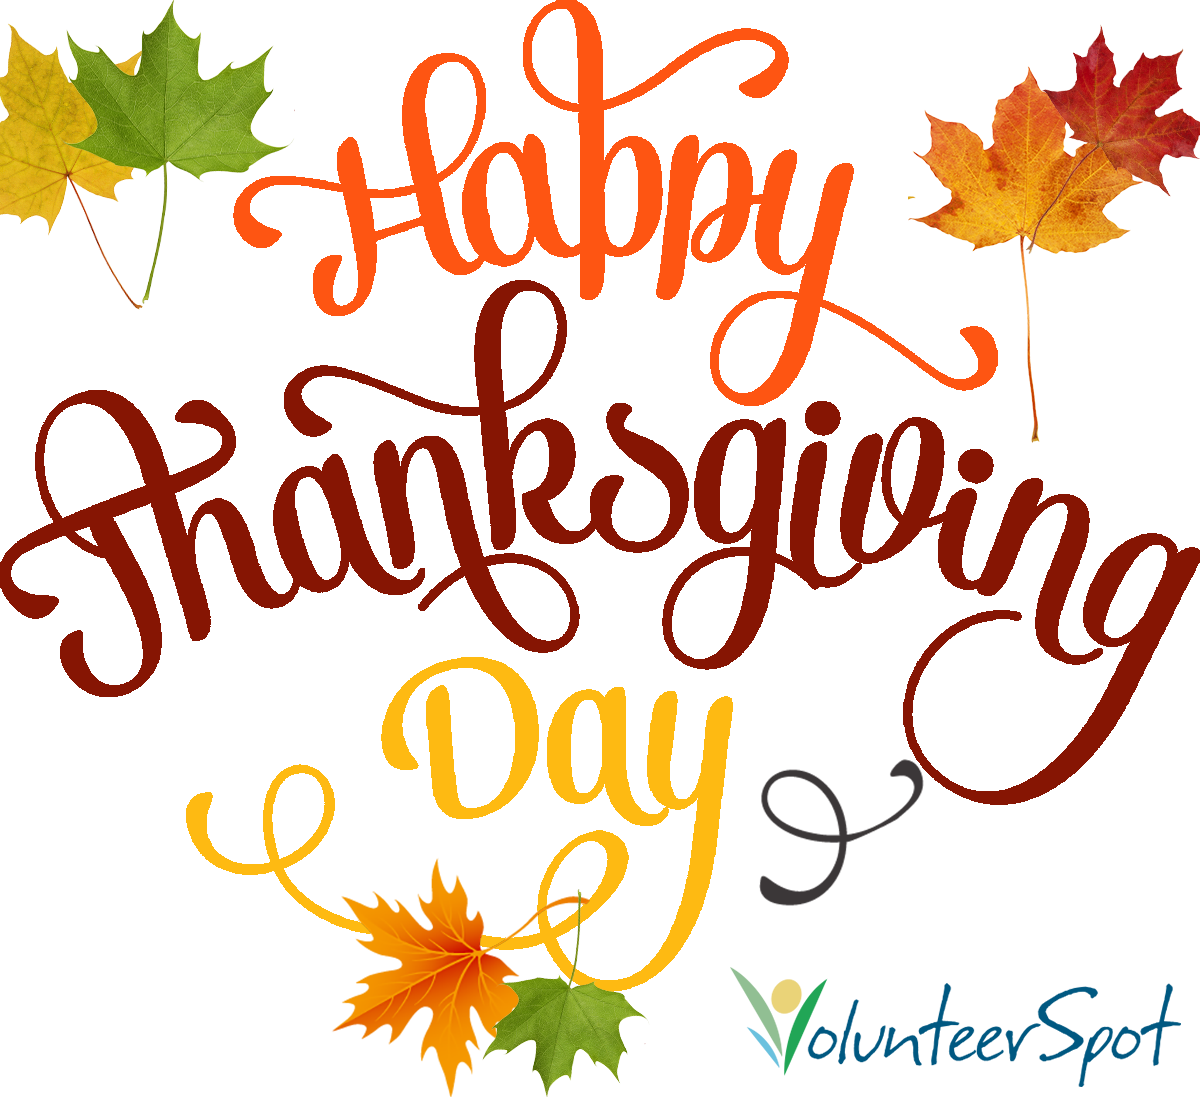 Happy thanksgiving country band clipart graphic free library Online SignUp Blog by SignUp.com: November 2015 graphic free library